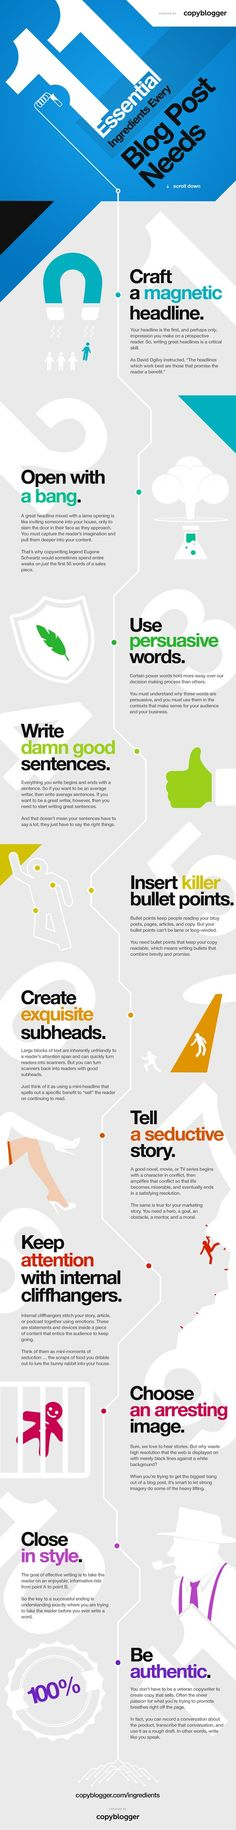 Infographic 11 Essential Ingredients Every Blog Post Needs